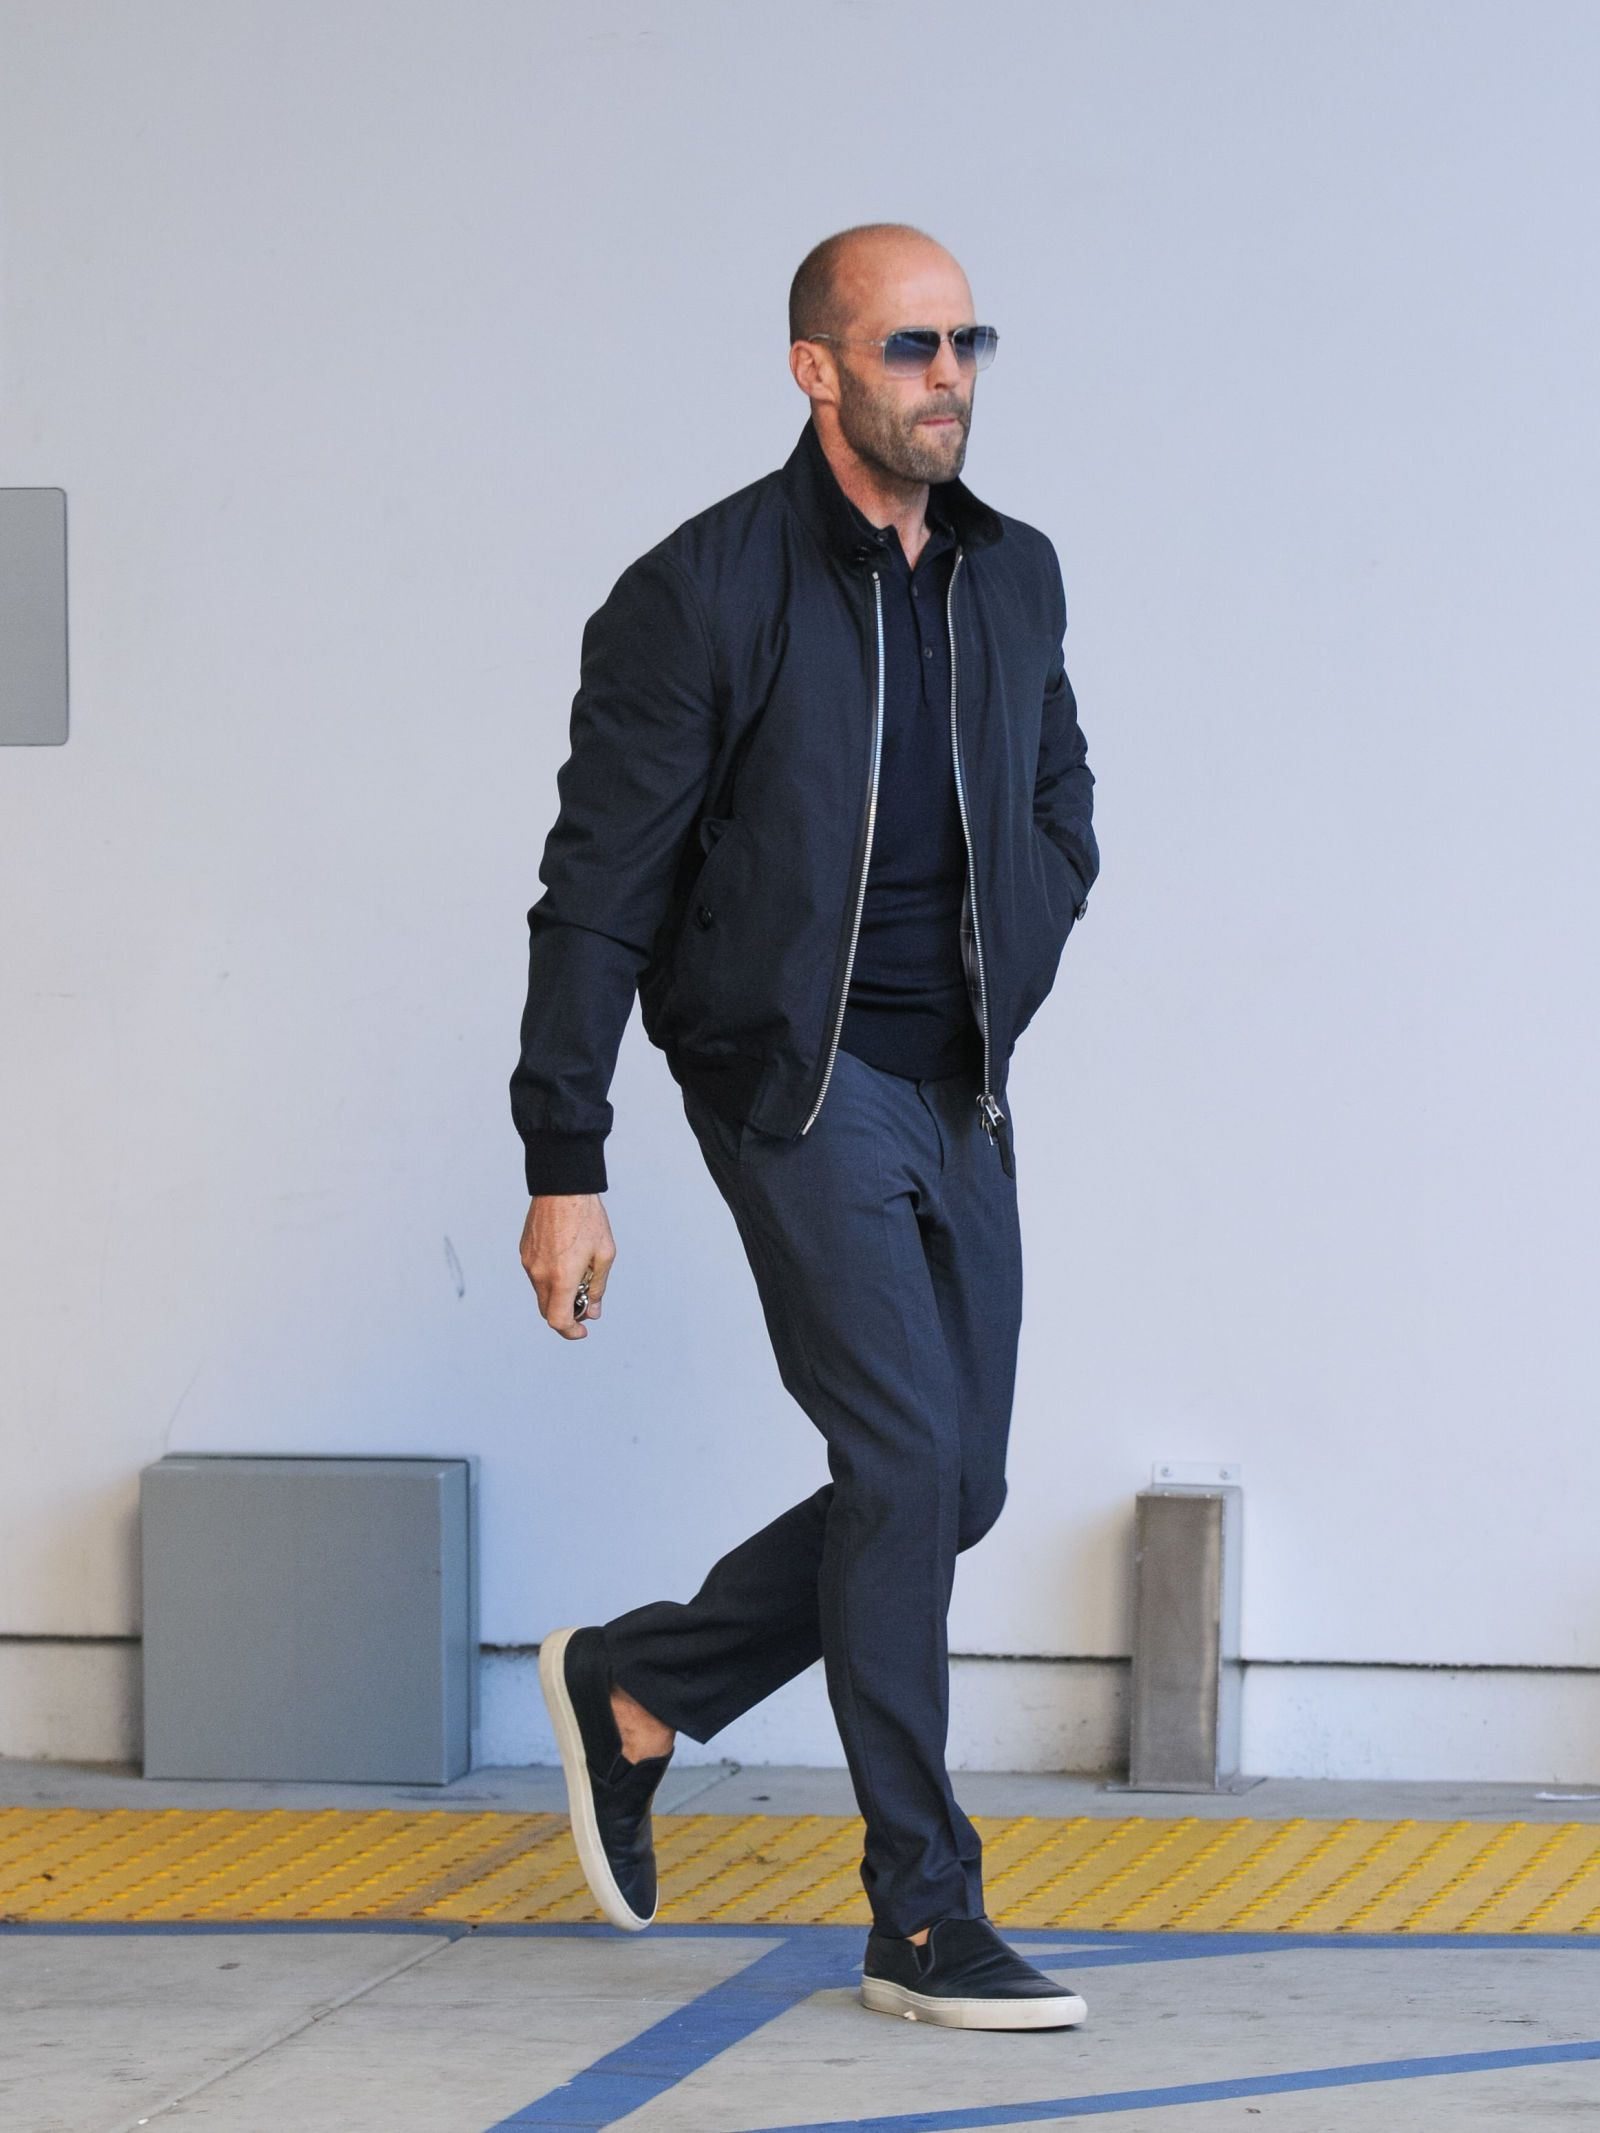 Pin By Xl On Xlplus In 2019 Bald Men Style Best Dressed Man Style